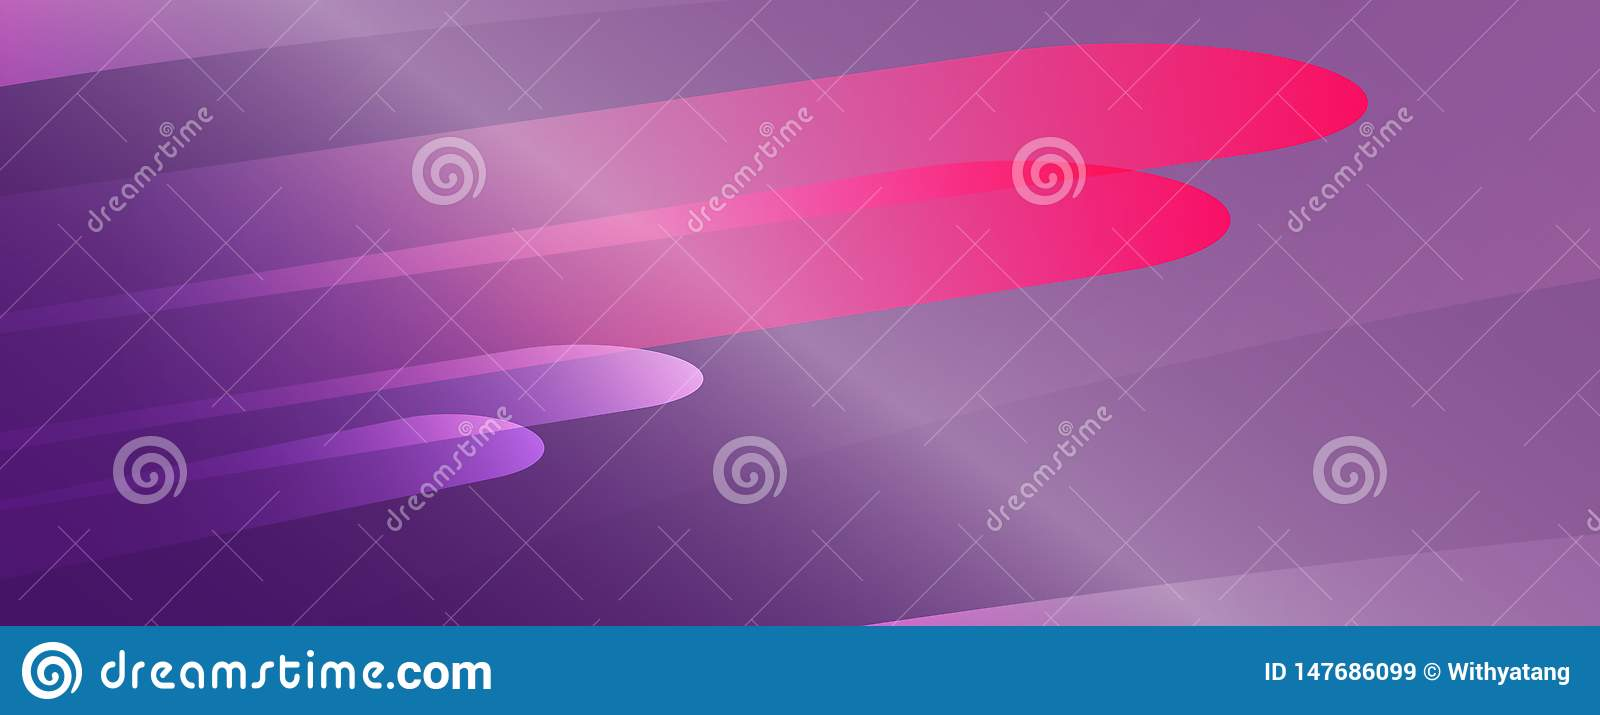 Colorful purple background. vector illustration design.Related technical background.